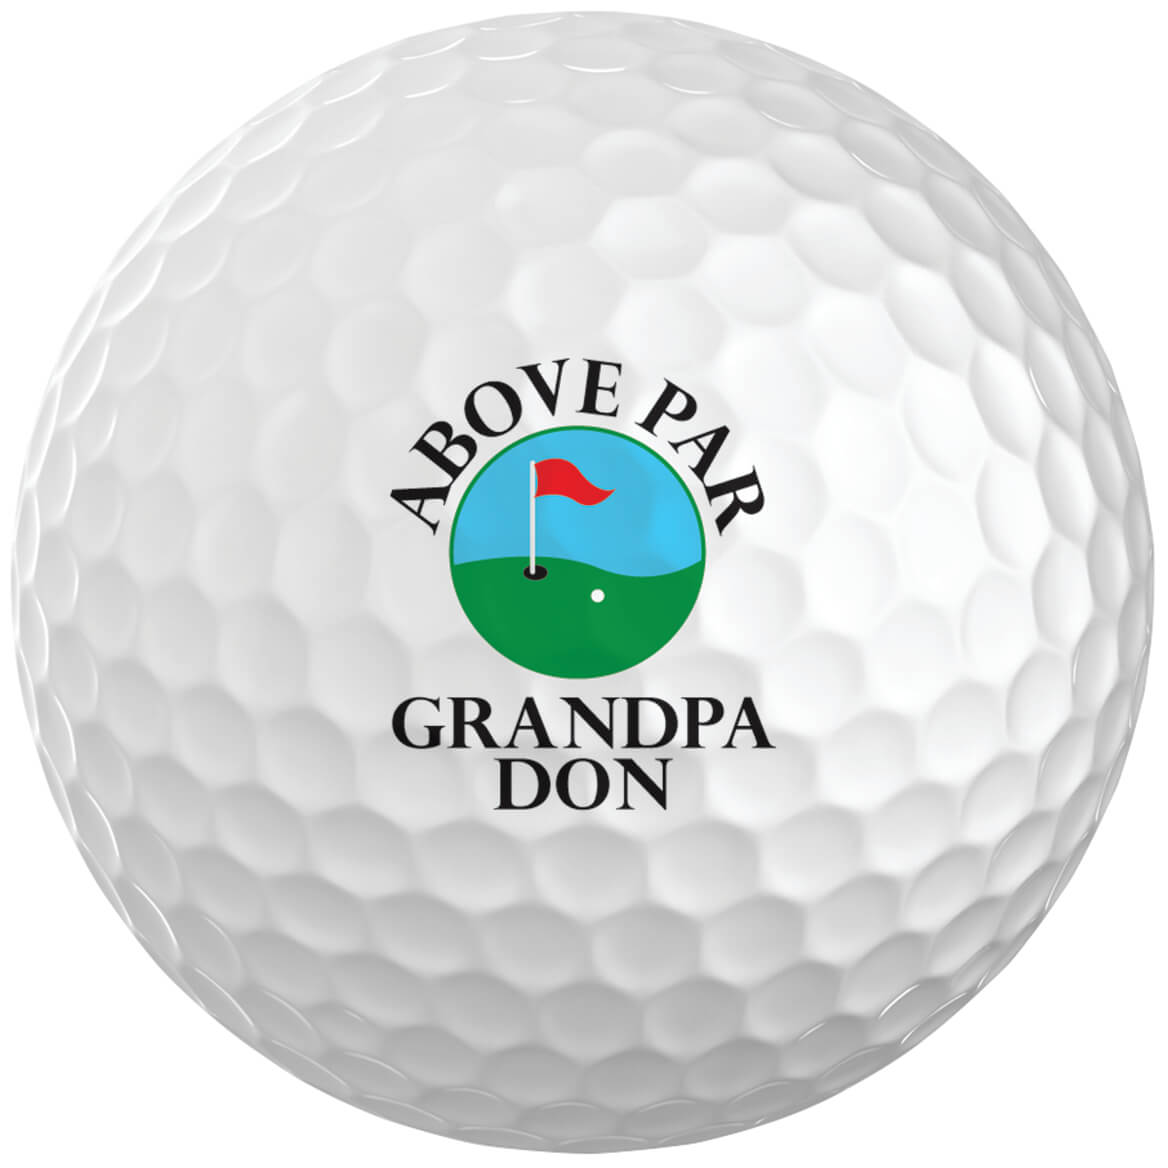 Personalized Golf Balls - Entertainment & Leisure - Walter Drake on golf ball beer, golf ball water, golf ball car, golf ball table, golf ball furniture, golf ball cap, golf ball products, golf ball putter, golf ball box, golf ball store, golf ball float, golf ball bird, golf ball card, golf ball cover, golf ball bed, golf ball awards, golf ball food, golf ball prizes, golf ball range, golf ball support,